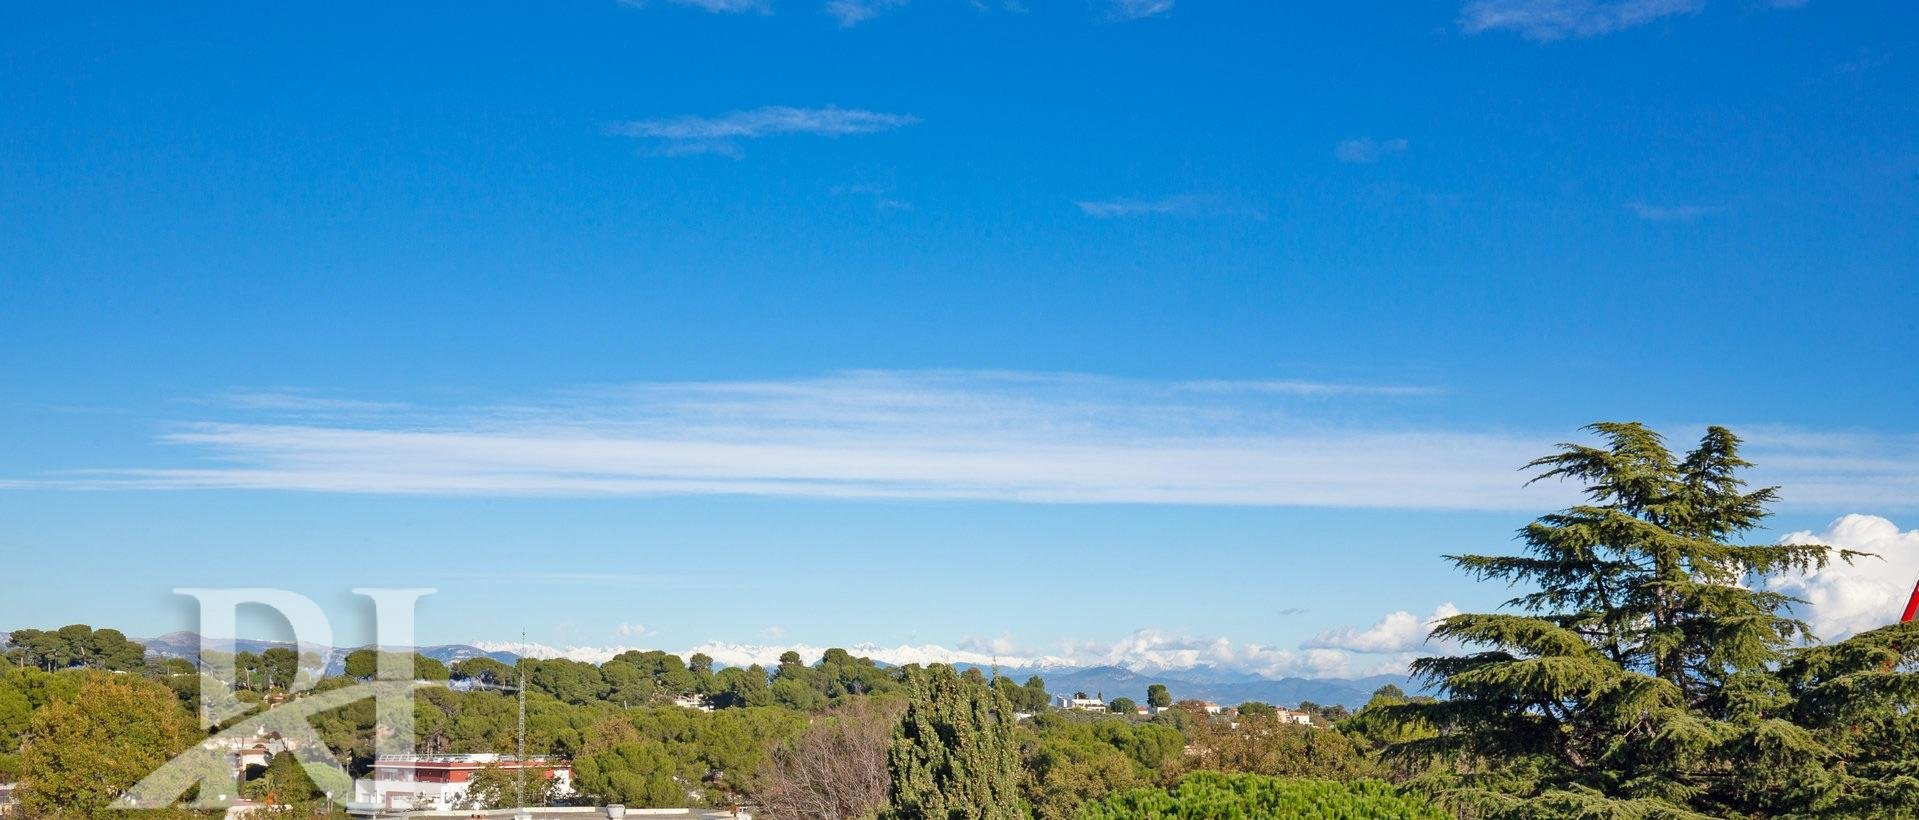 Beautiful Rooftop 3 bedroom apartment with large terrasse 150 sqm Sight of the Sea